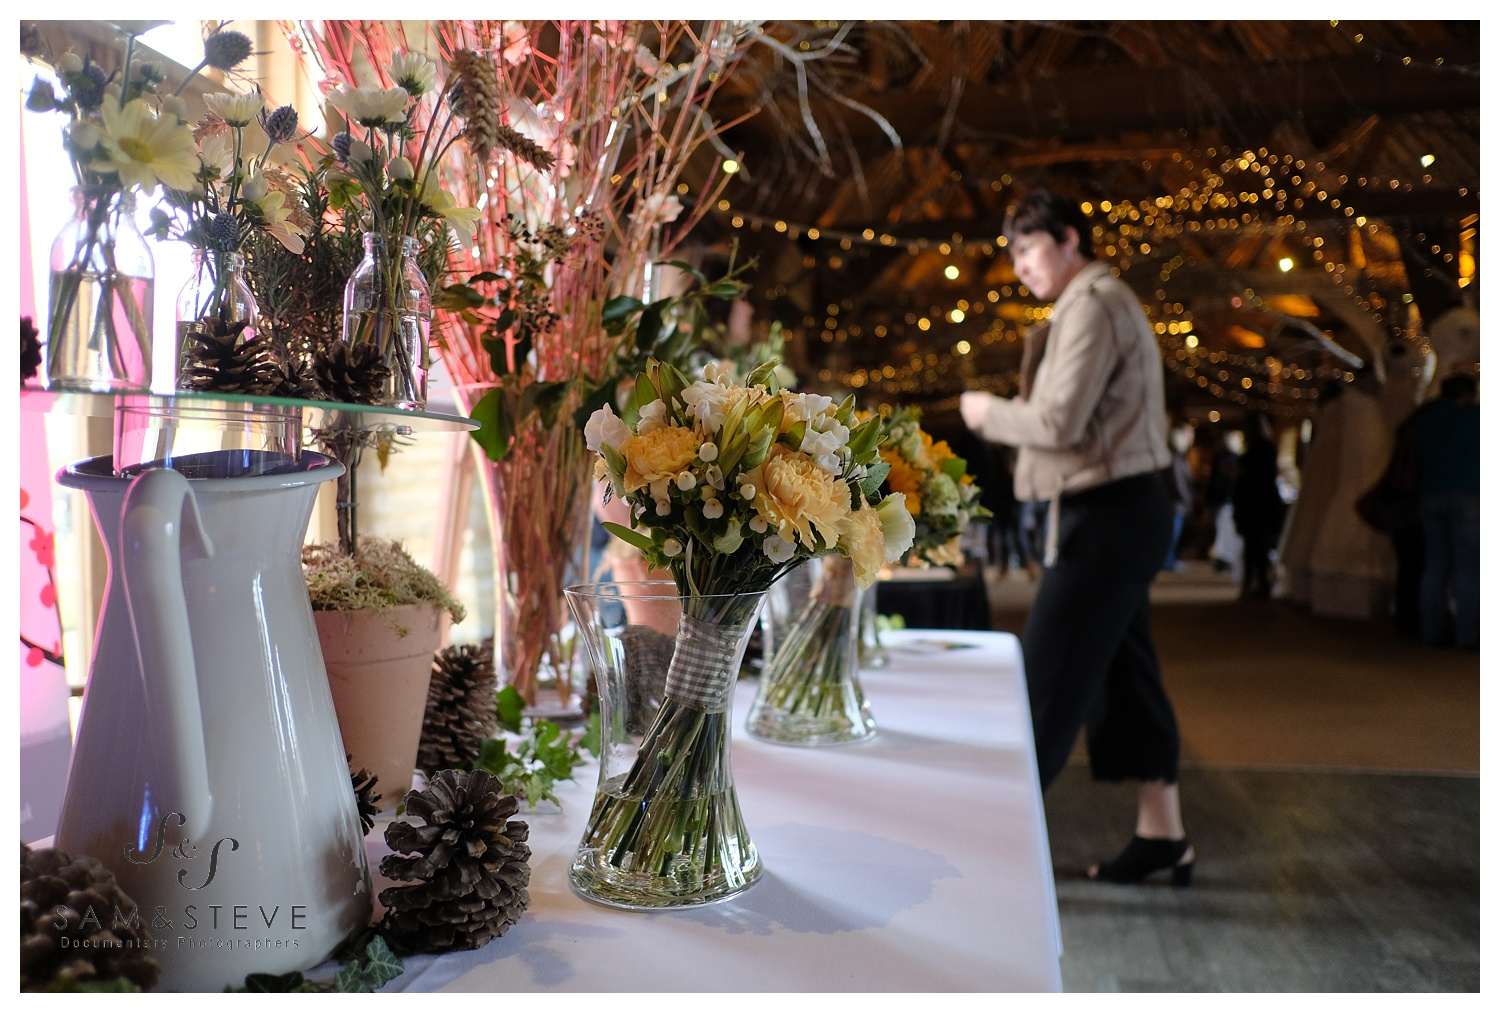 A lovely floral arrangement by  Penny Blossoms at the Tythe Barn wedding fair.